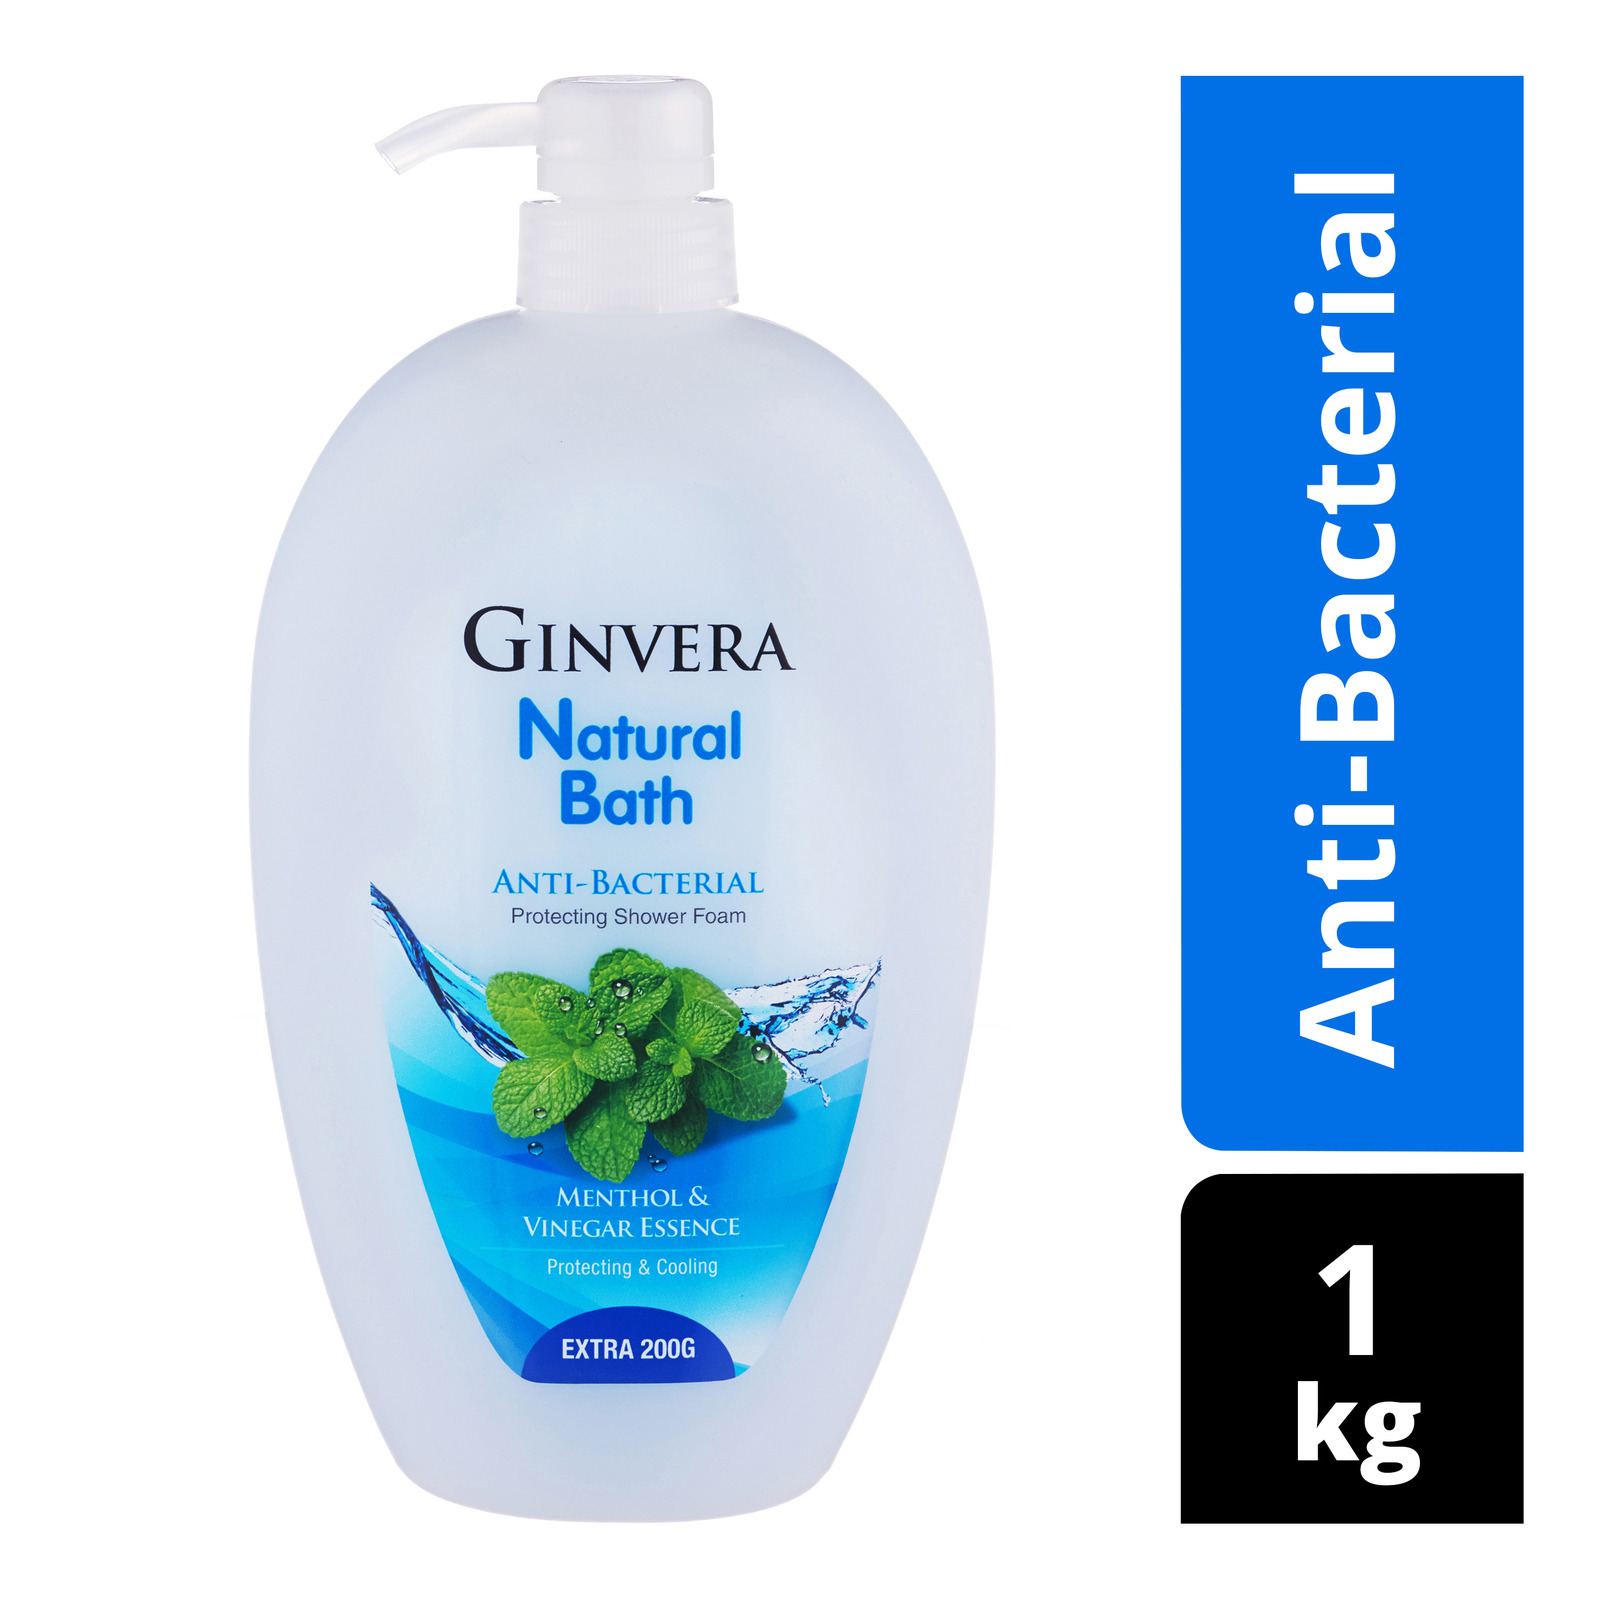 Ginvera Natural Bath Shower Foam - Anti-Bacterial